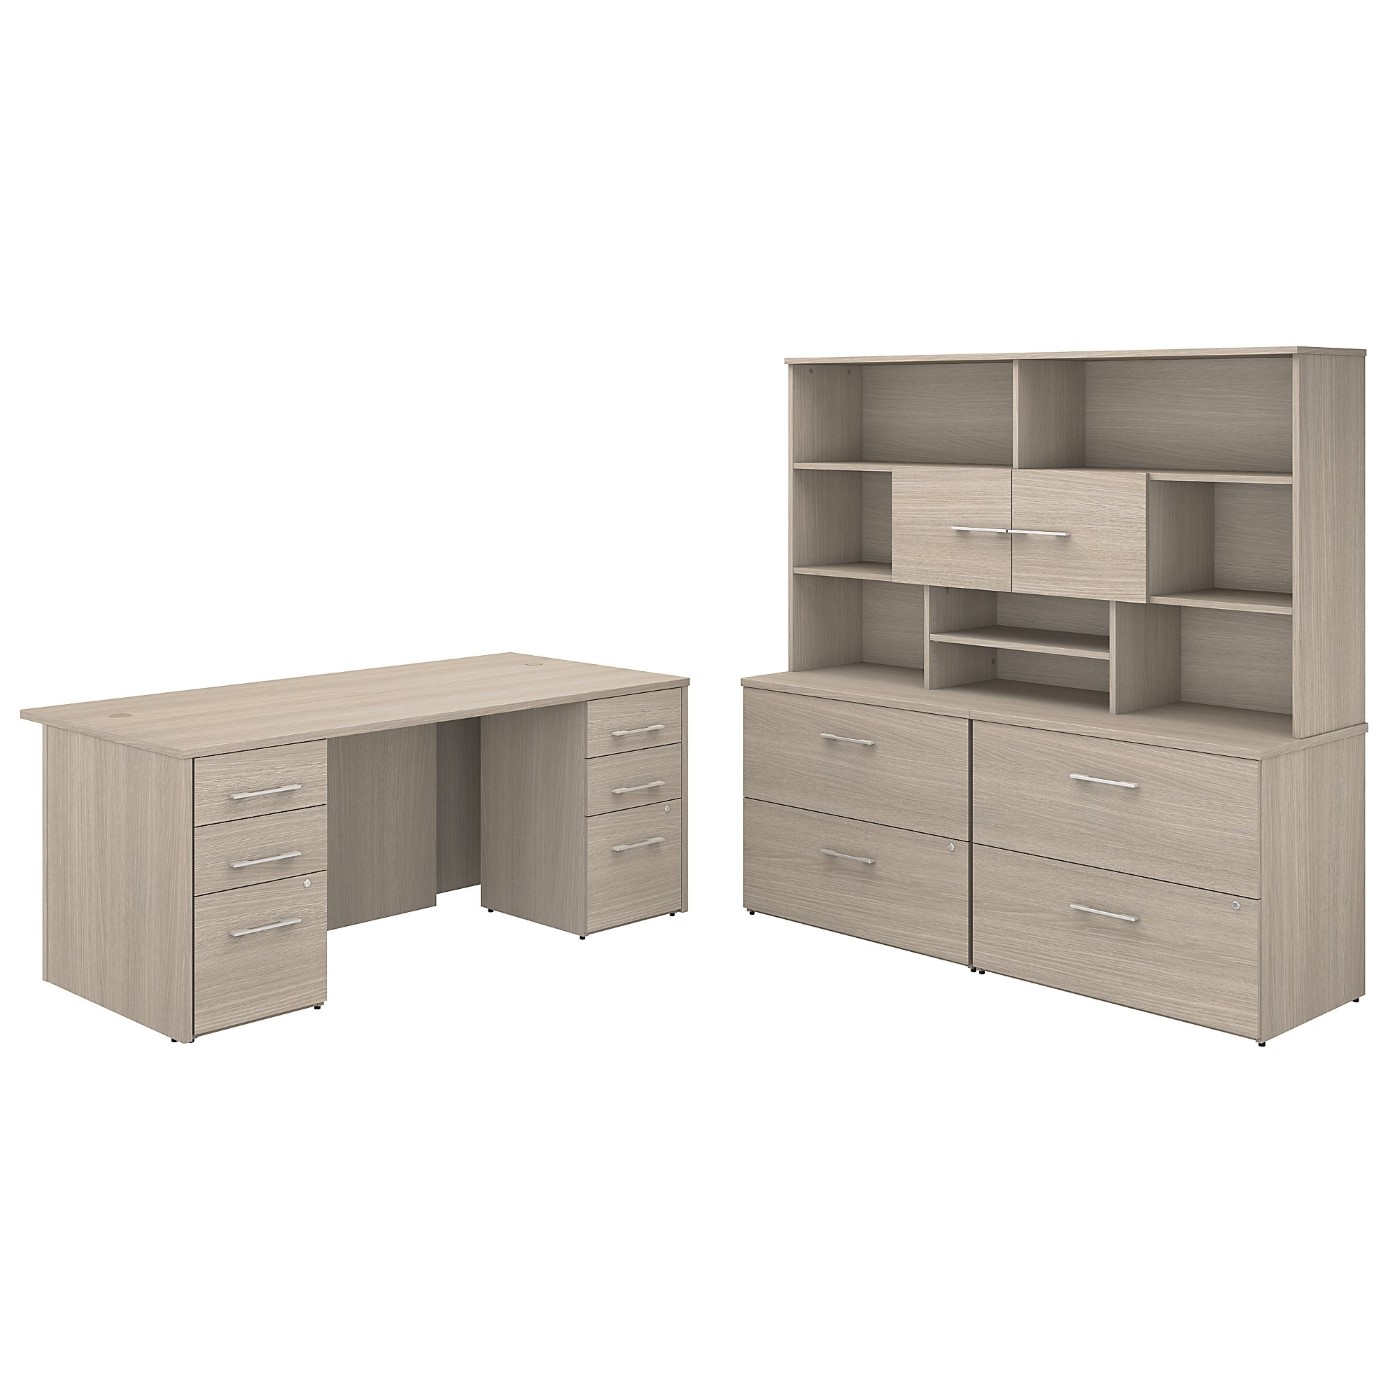 BUSH BUSINESS FURNITURE OFFICE 500 72W X 36D EXECUTIVE DESK WITH DRAWERS, LATERAL FILE CABINETS AND HUTCH. FREE SHIPPING